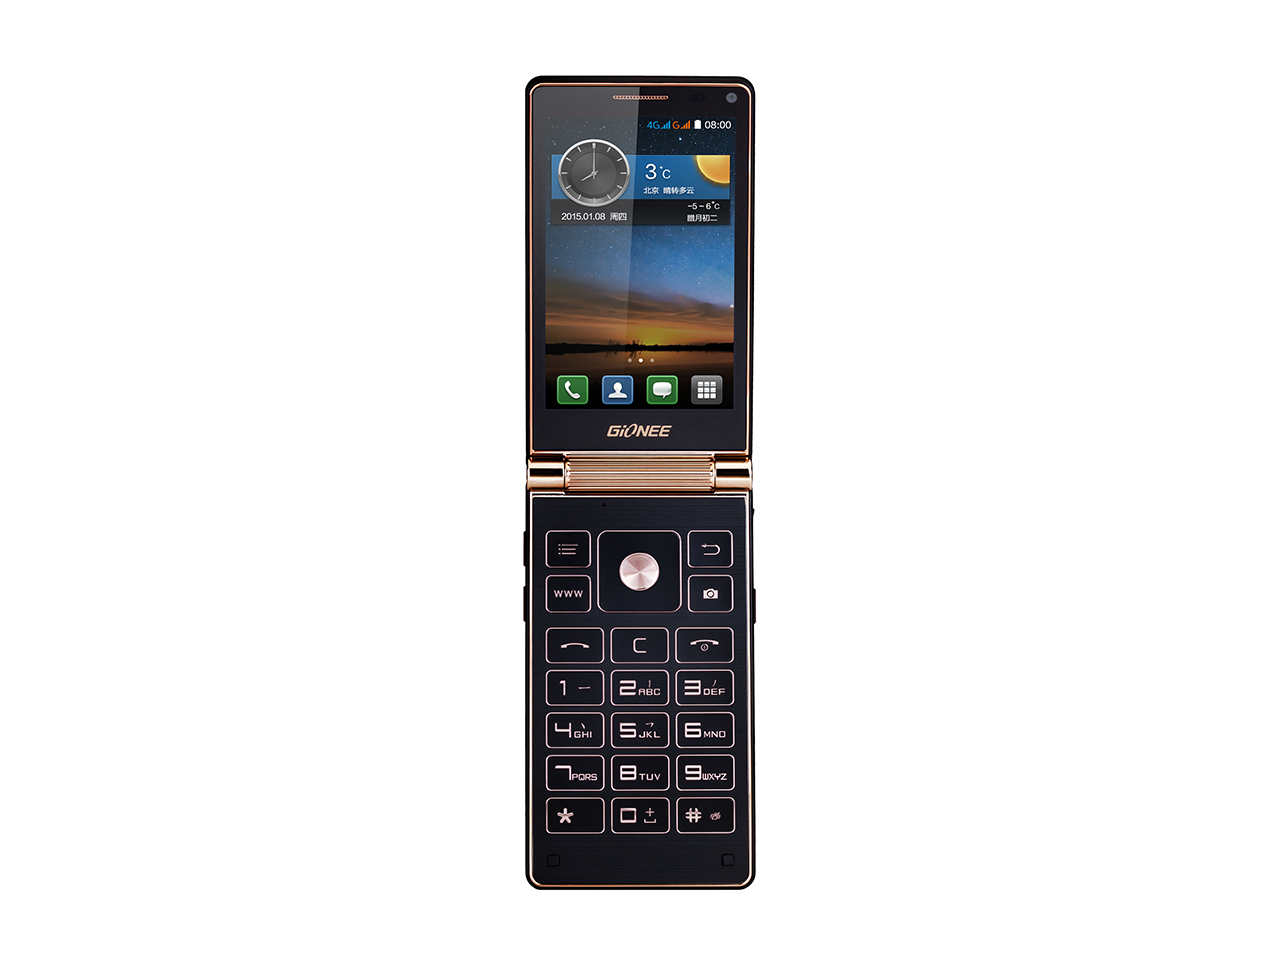 Gionee W900S front view